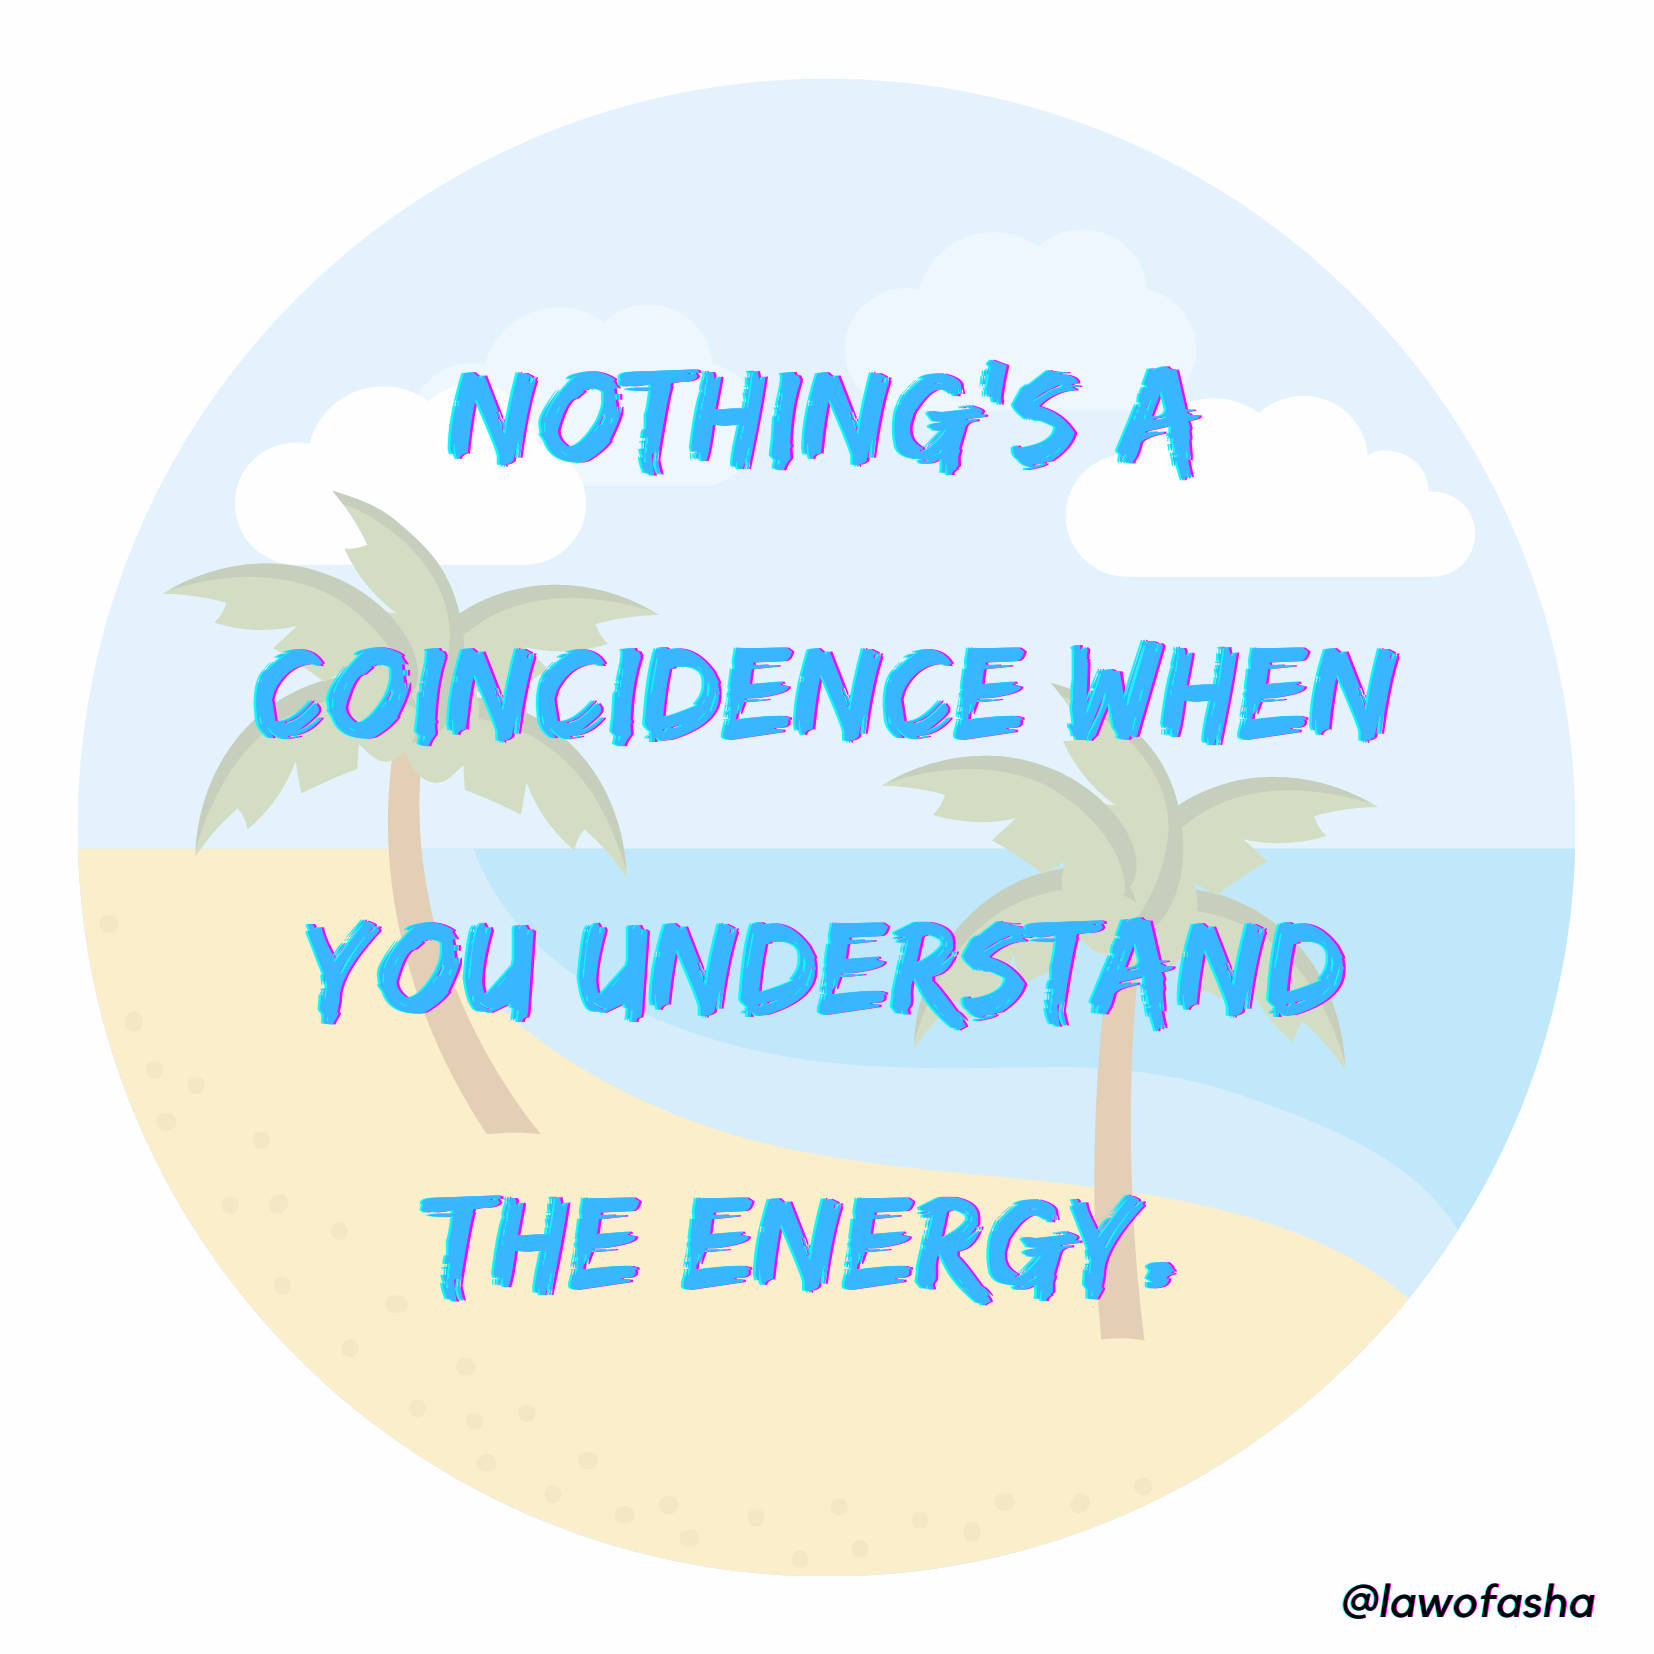 Nothing's a Coincidence When You Understand the Energy